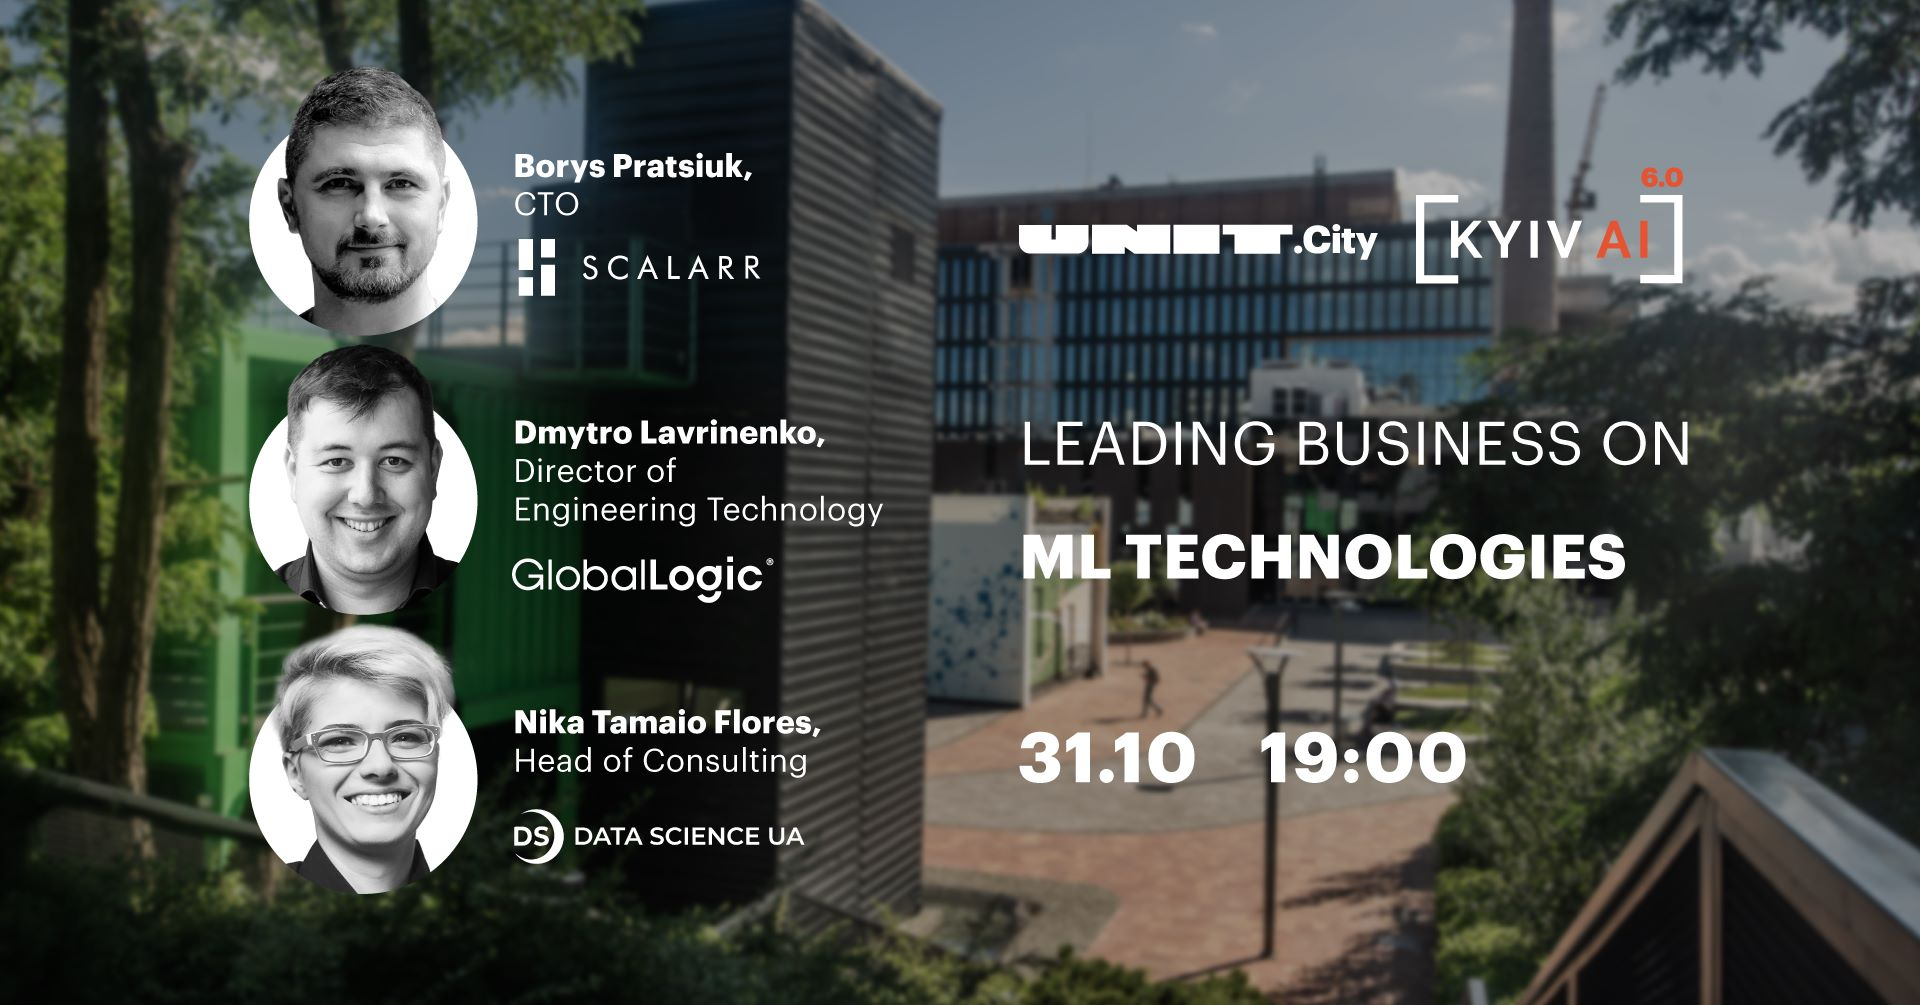 Kyiv AI 6.0: Leading business on ML technologies